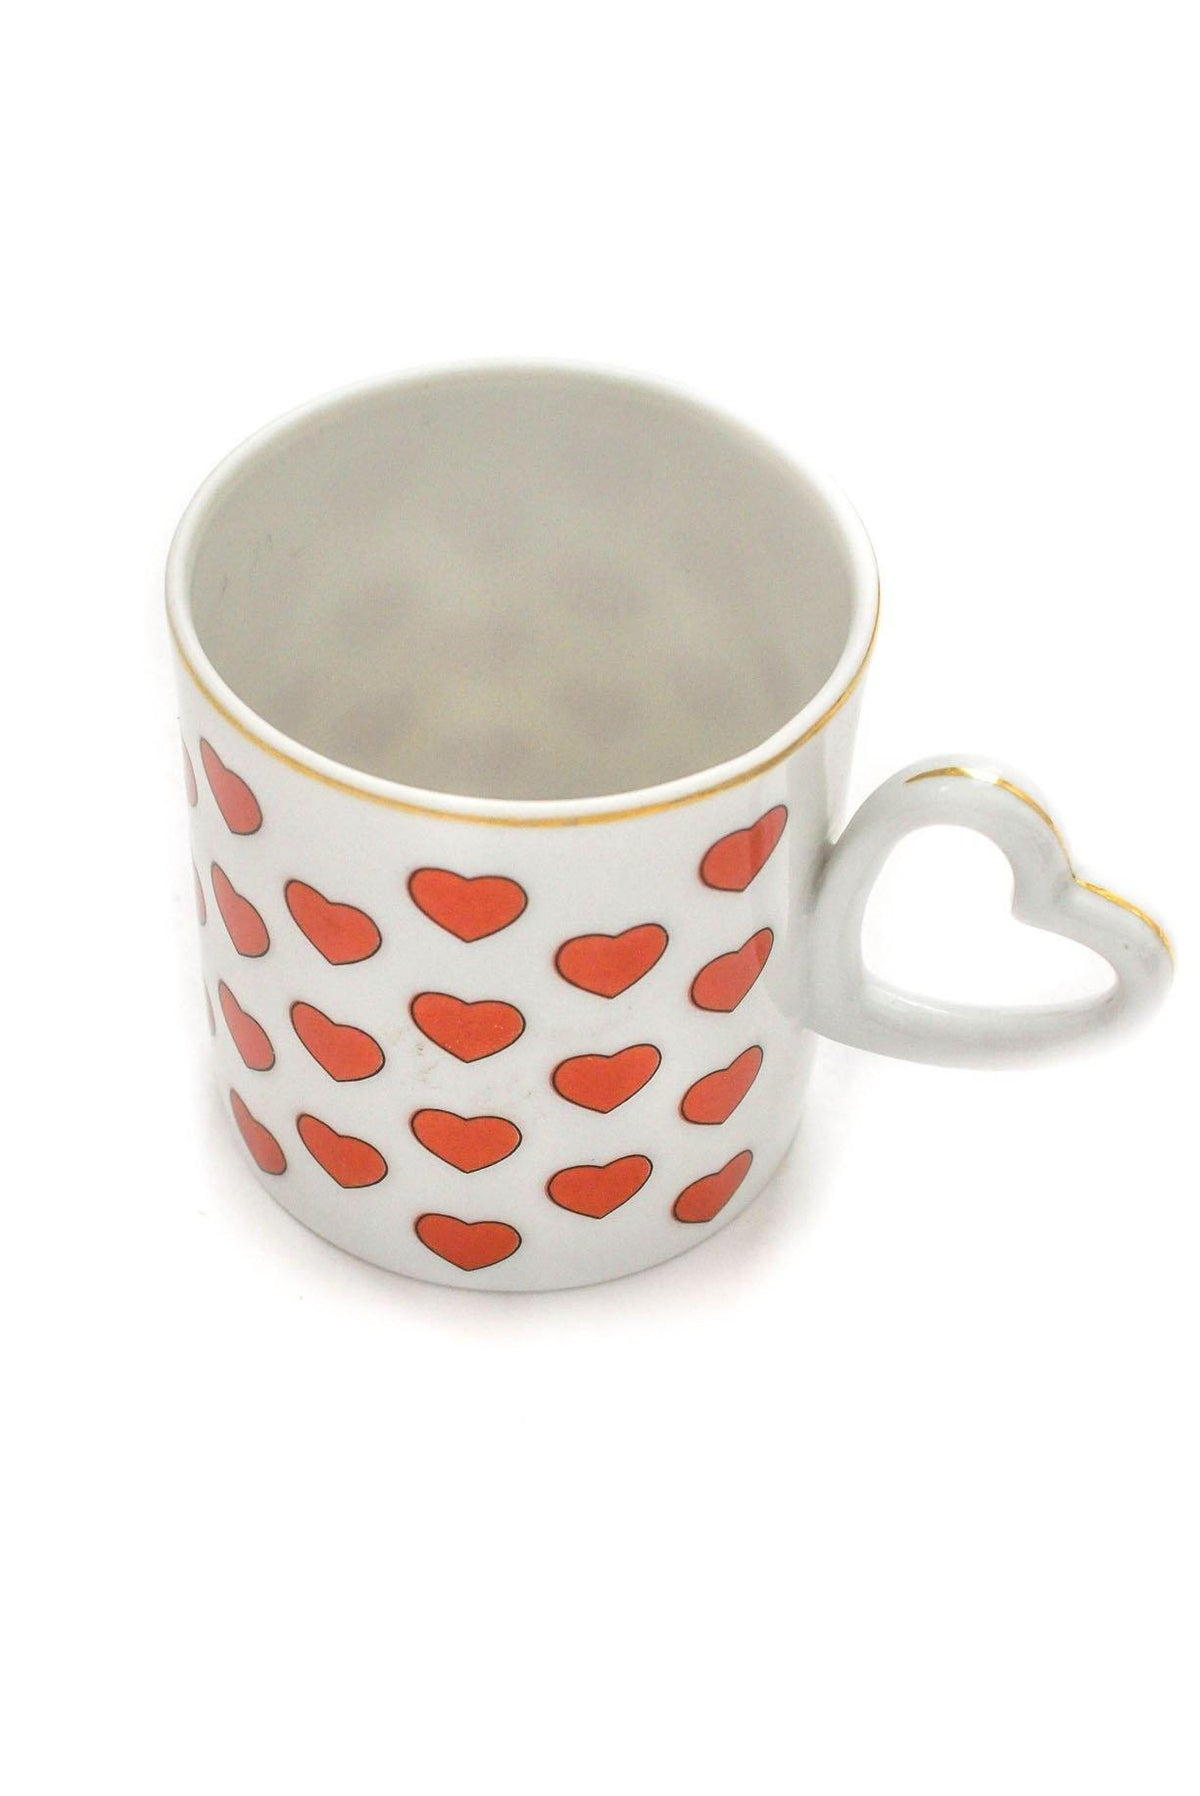 Vintage Red Hearts Mug from Sweet and Spark